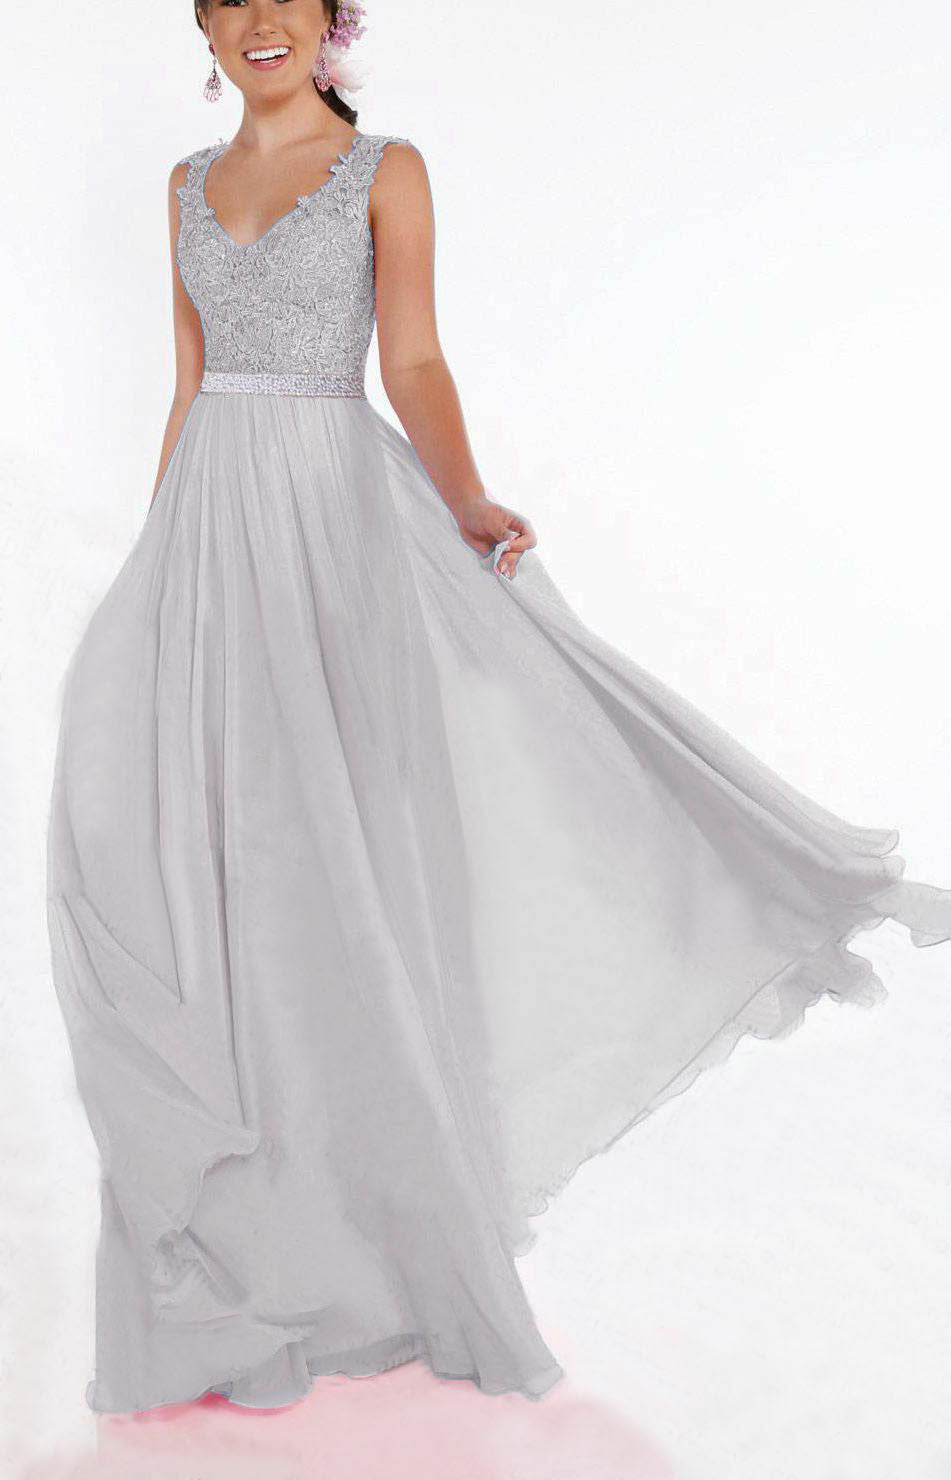 Beth silver grey lace chiffon sequin crystal beaded long bridesmaid wedding bridal prom evening dress loulous bridal boutique uk